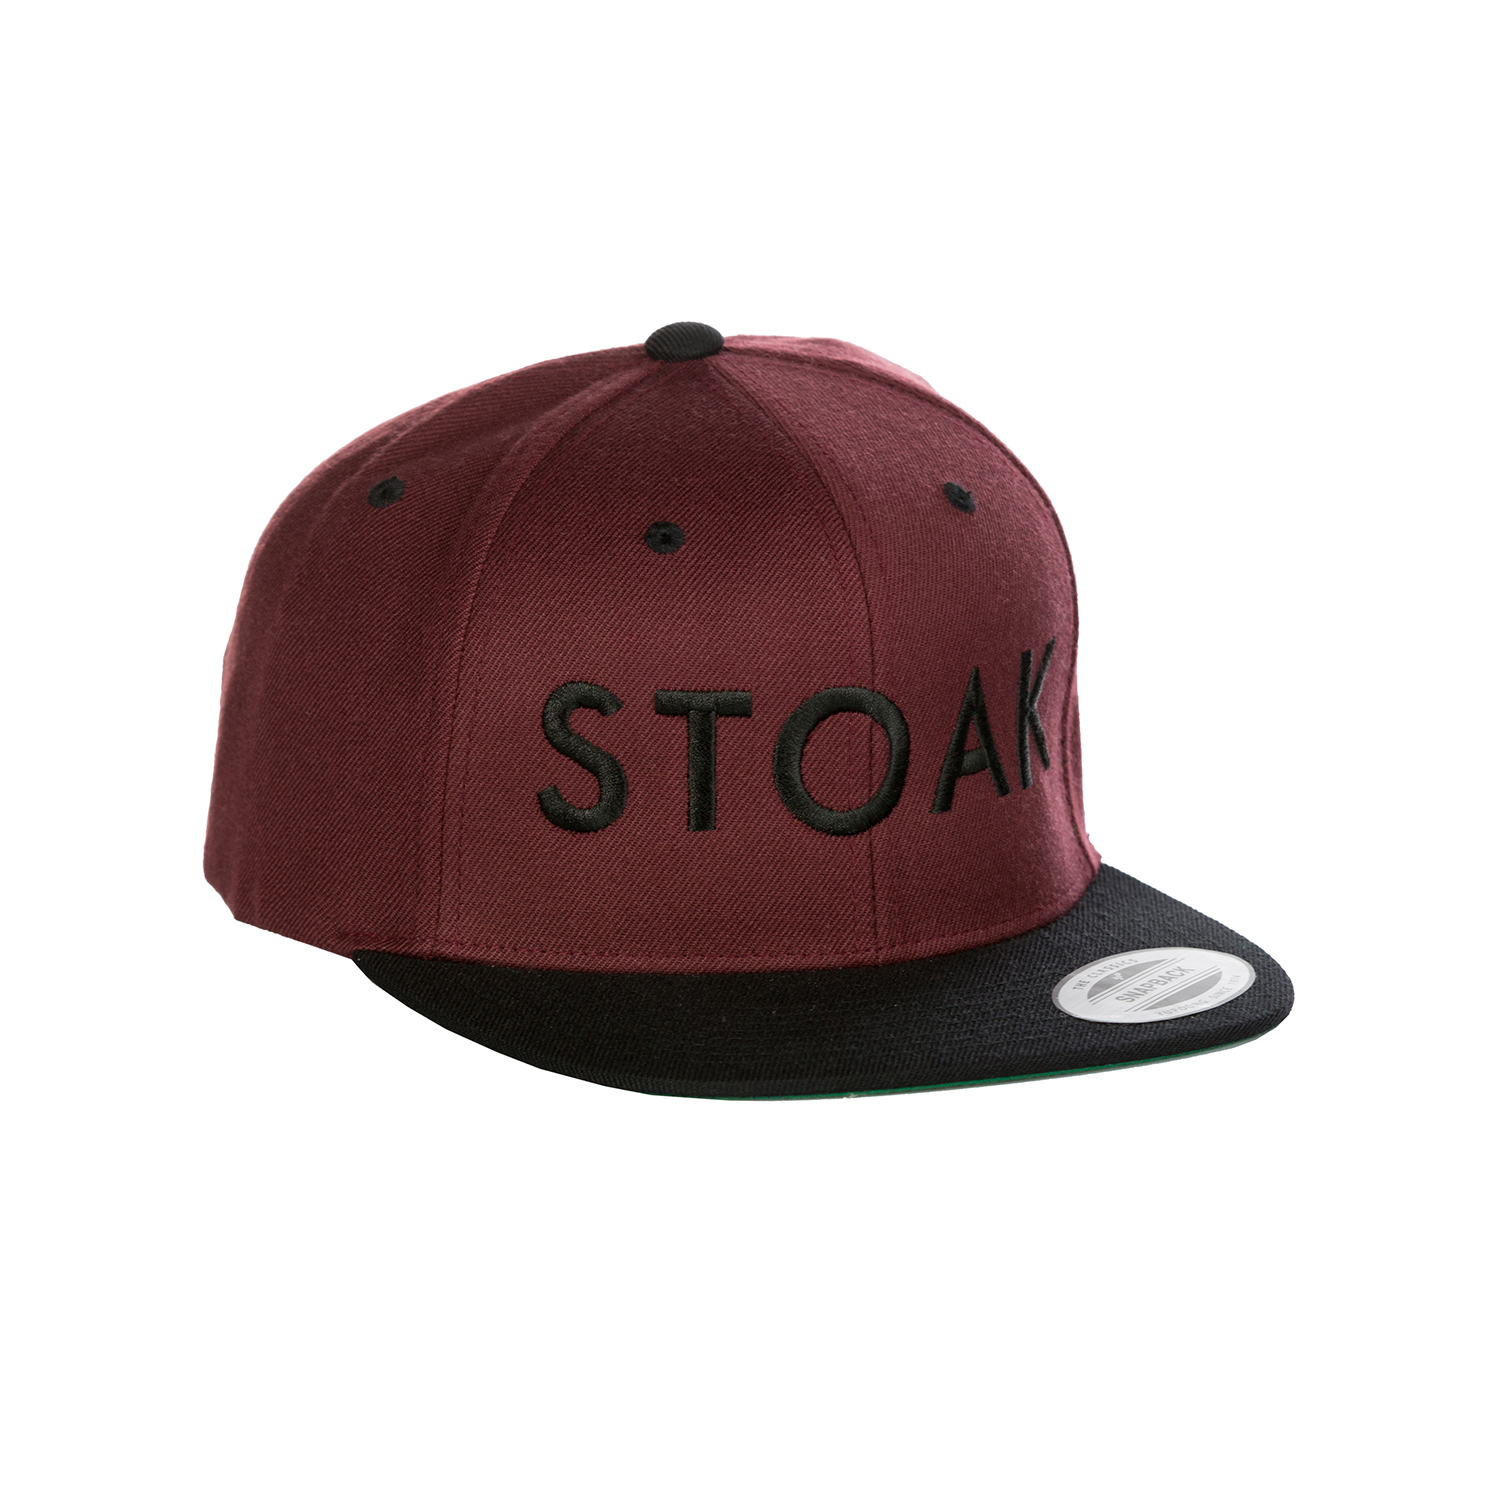 STOAK CARBON RUSH Cap